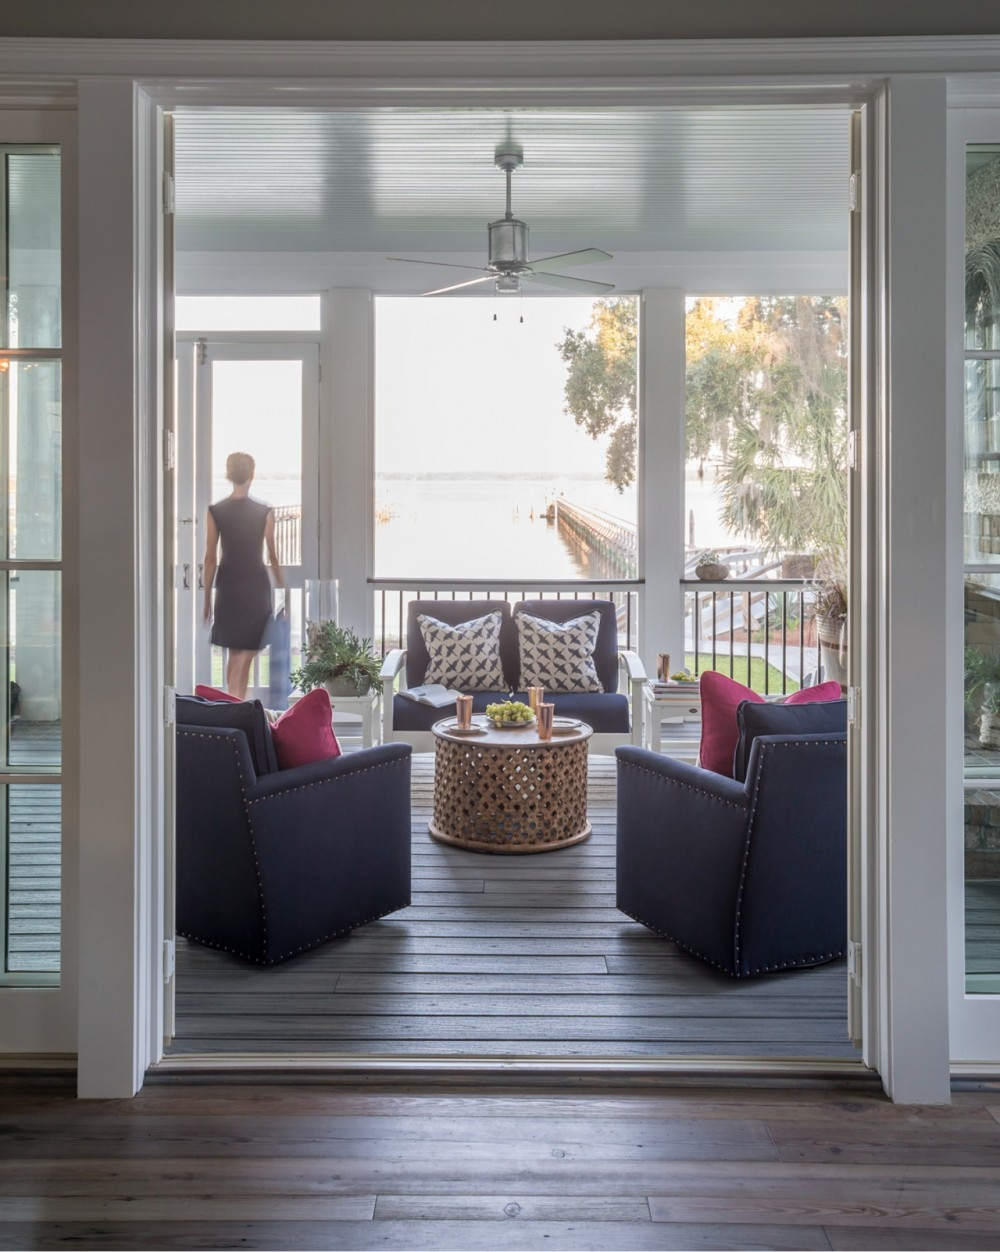 A large, comfortable screened porch welcomes breezes and views of Port Royal Sound and Hilton Head Island.